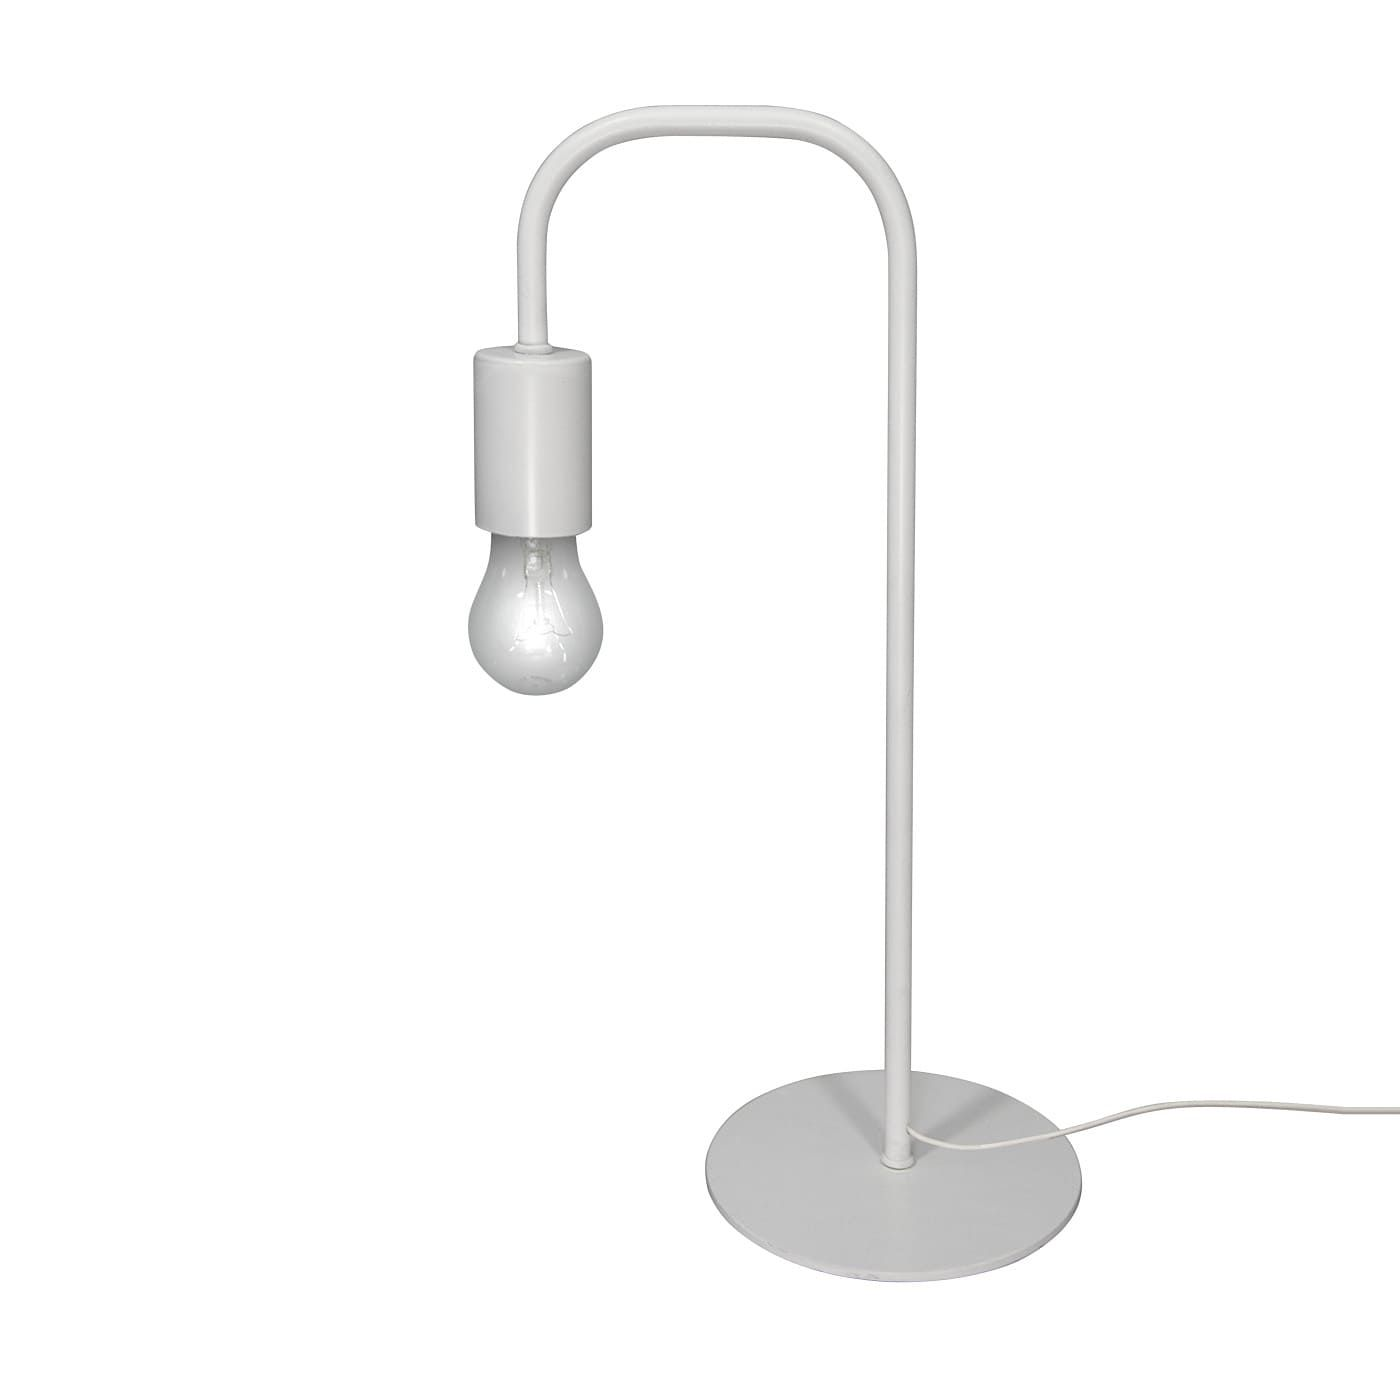 PETRASVET / Table lamp white loft S5081-1, 1xE27 max. 60W